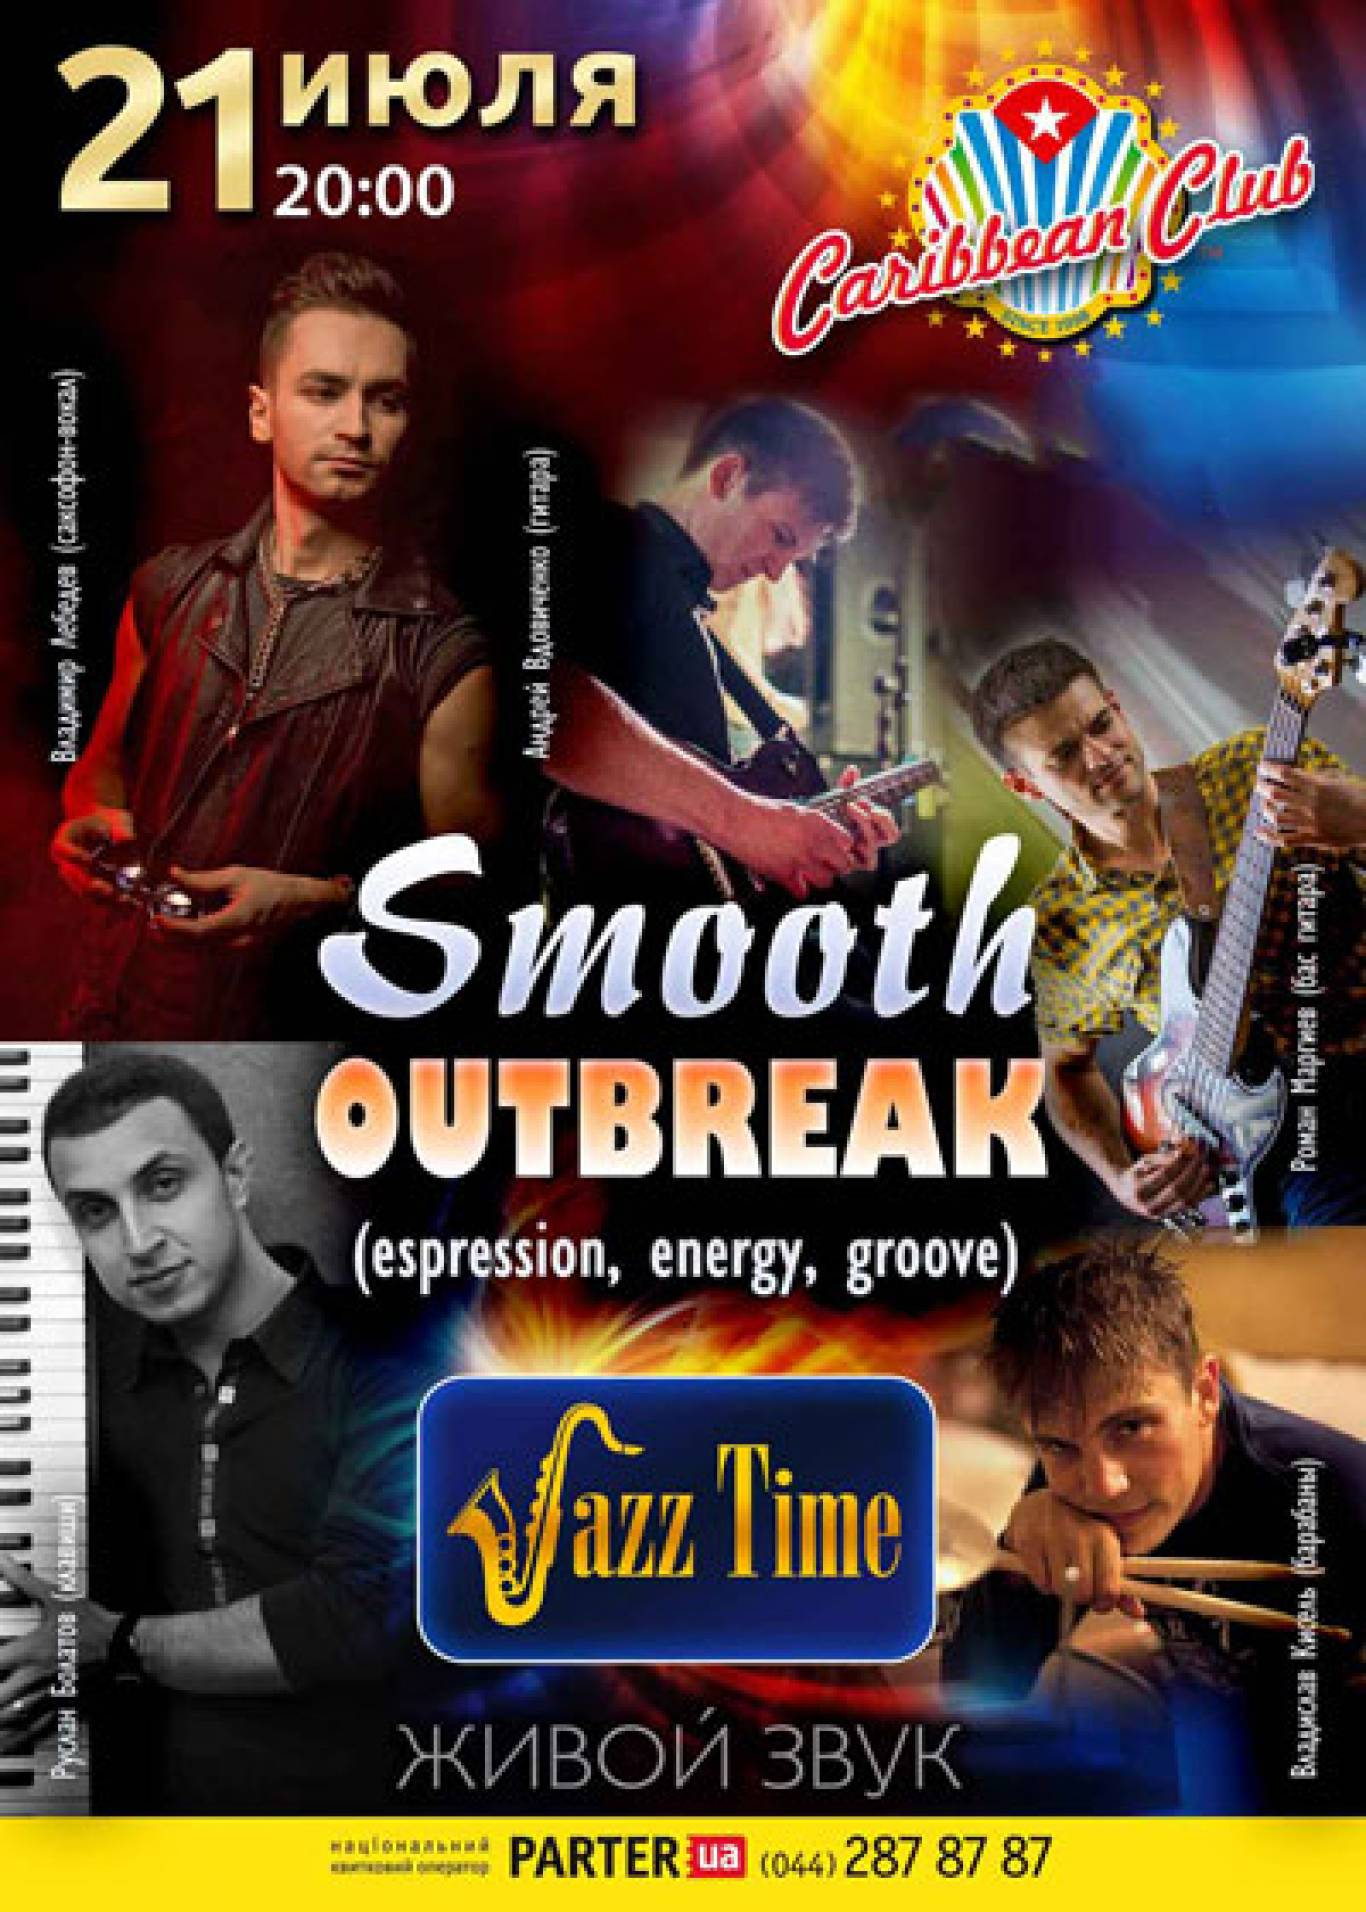 Концерт Smooth Outbreak в Caribbean Club